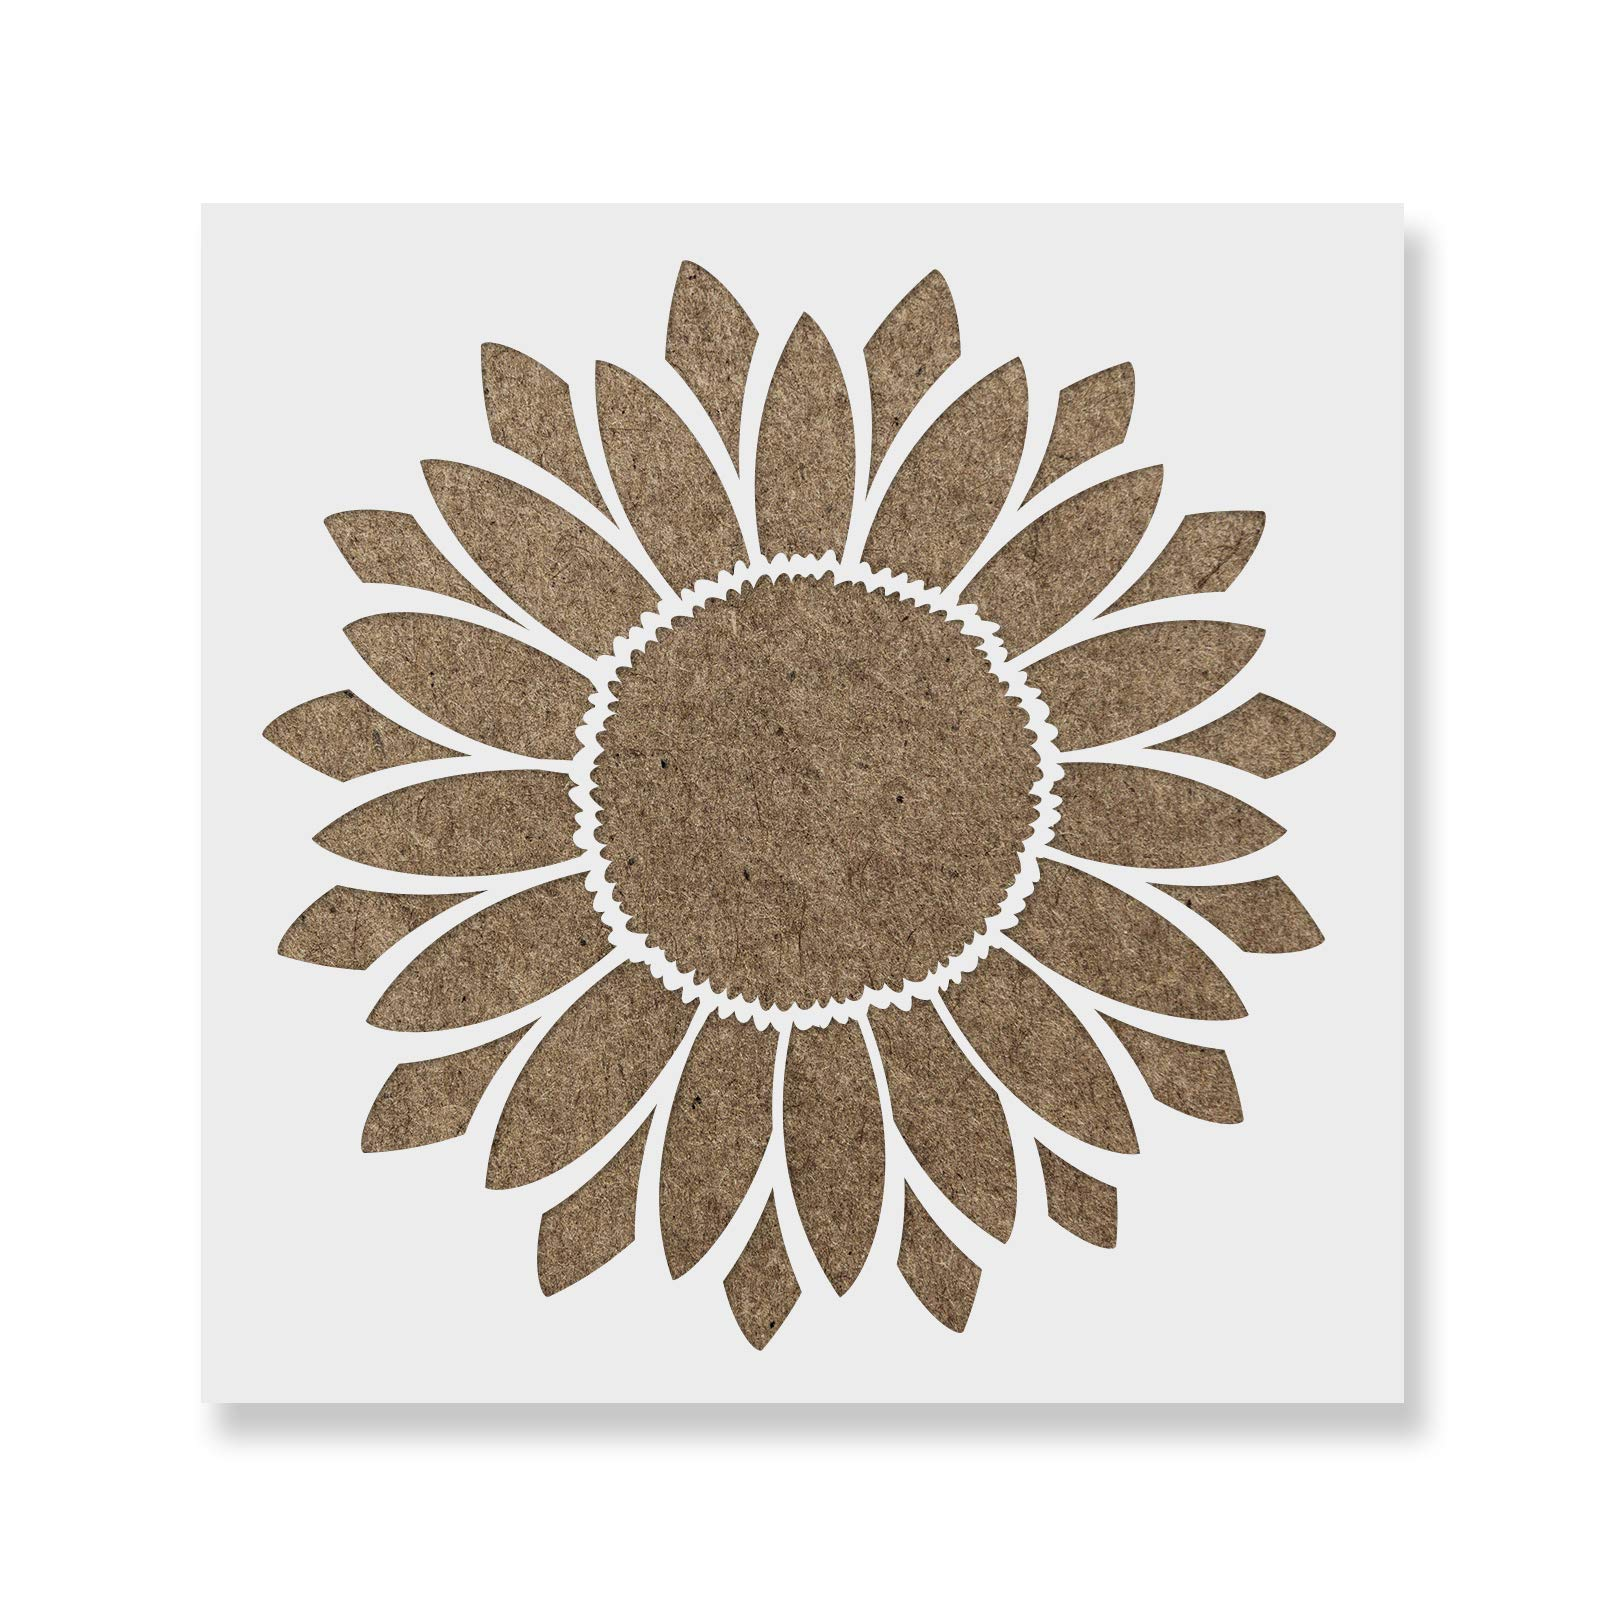 Sunflower Stencil Template for Walls and Crafts - Reusable Stencils for Painting in Small & Large Sizes